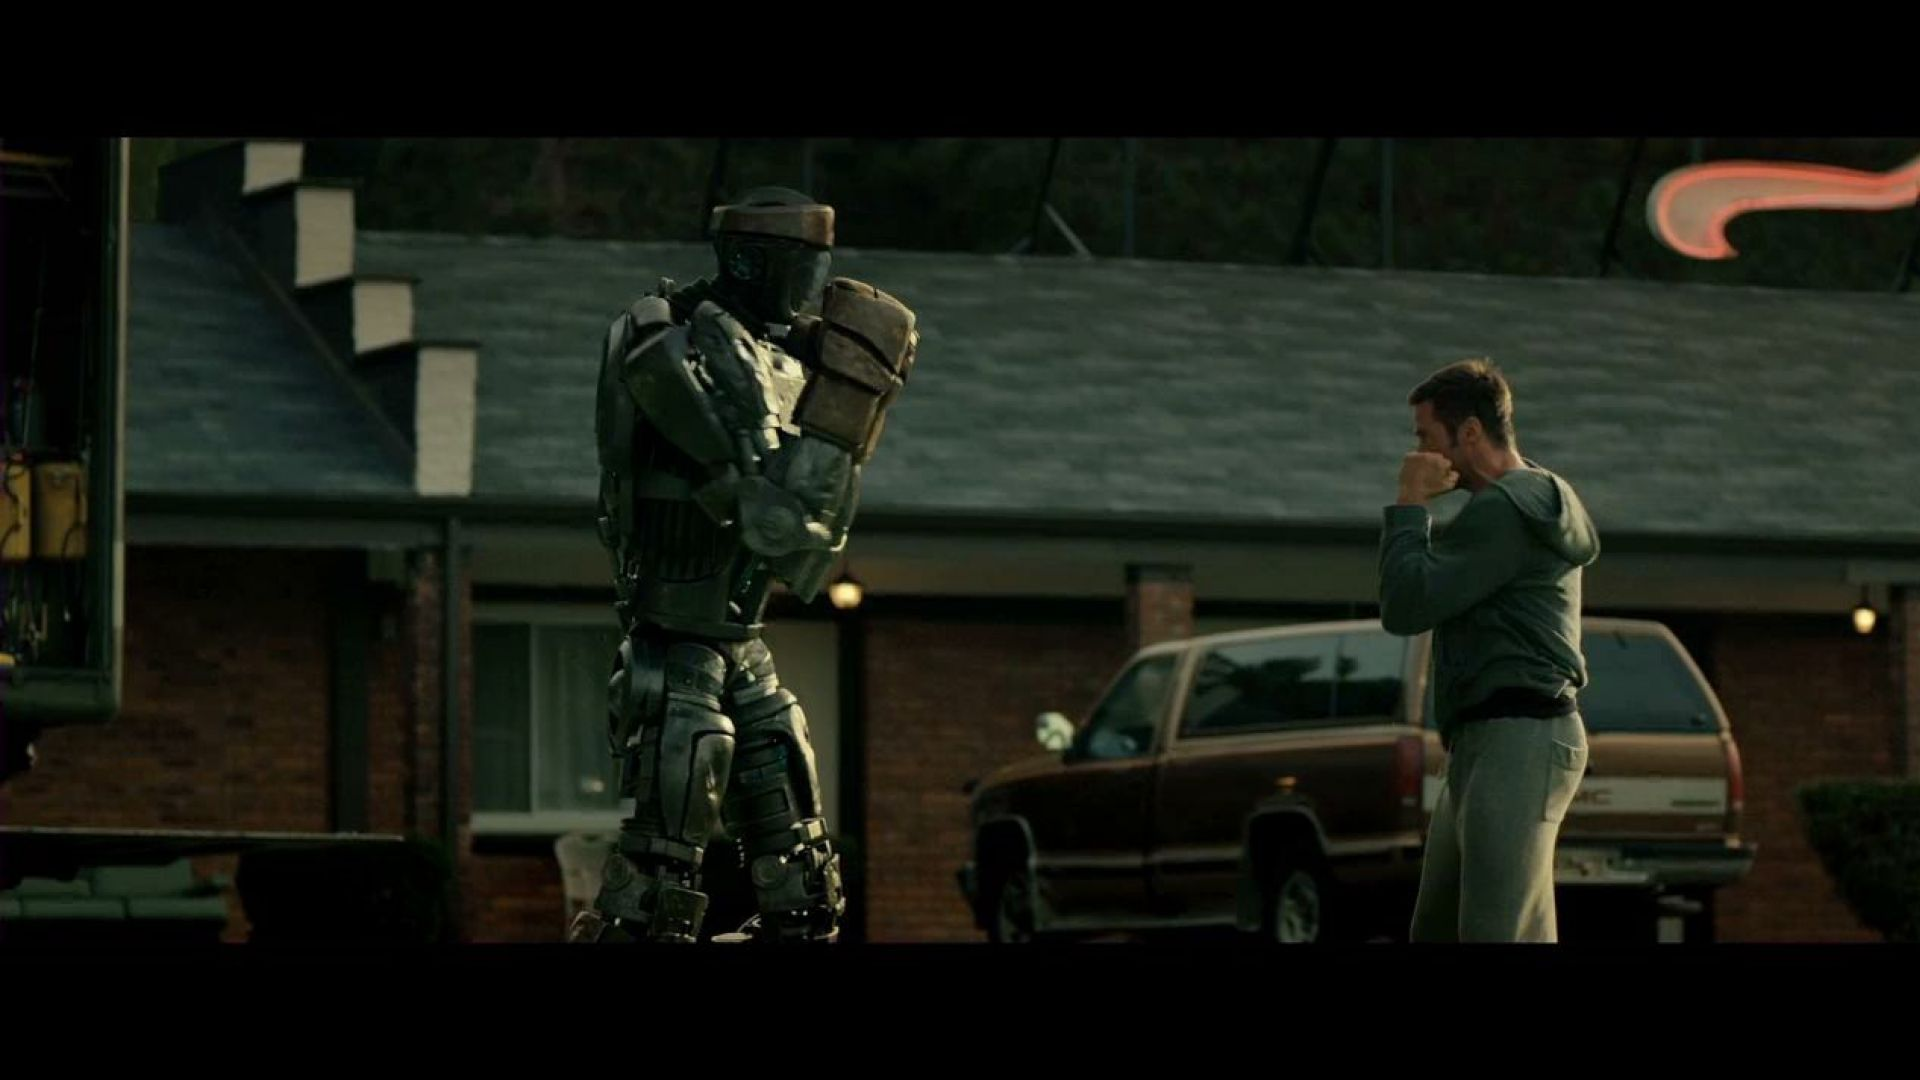 And now you're not out of breath. I like it. Real Steel